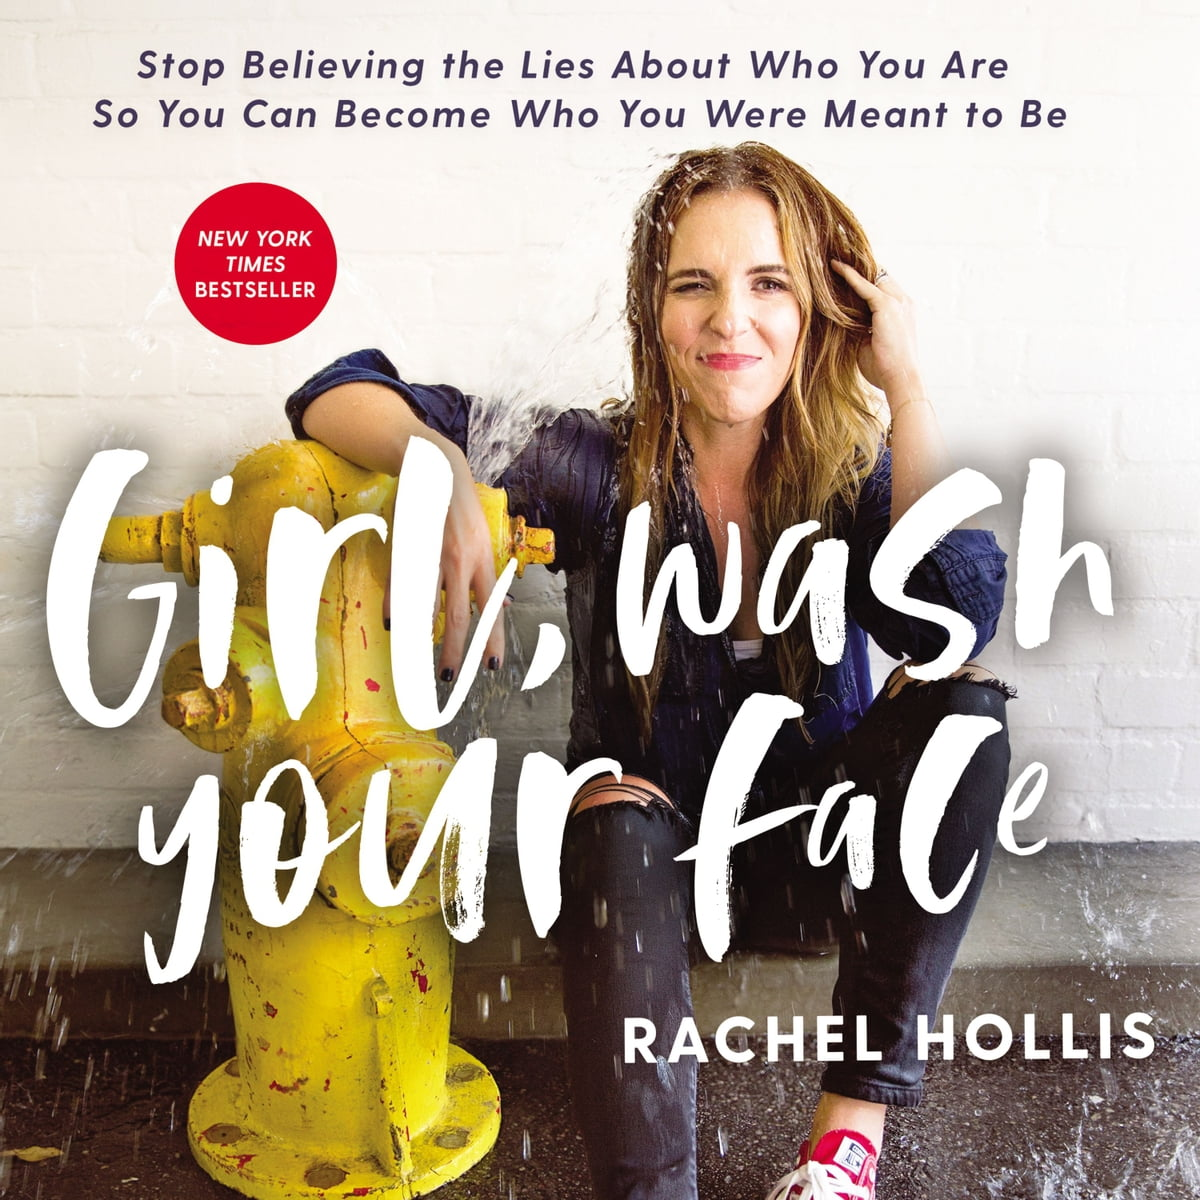 Girl, Wash Your Face Audiobook by Rachel Hollis - 9781400201679 ...